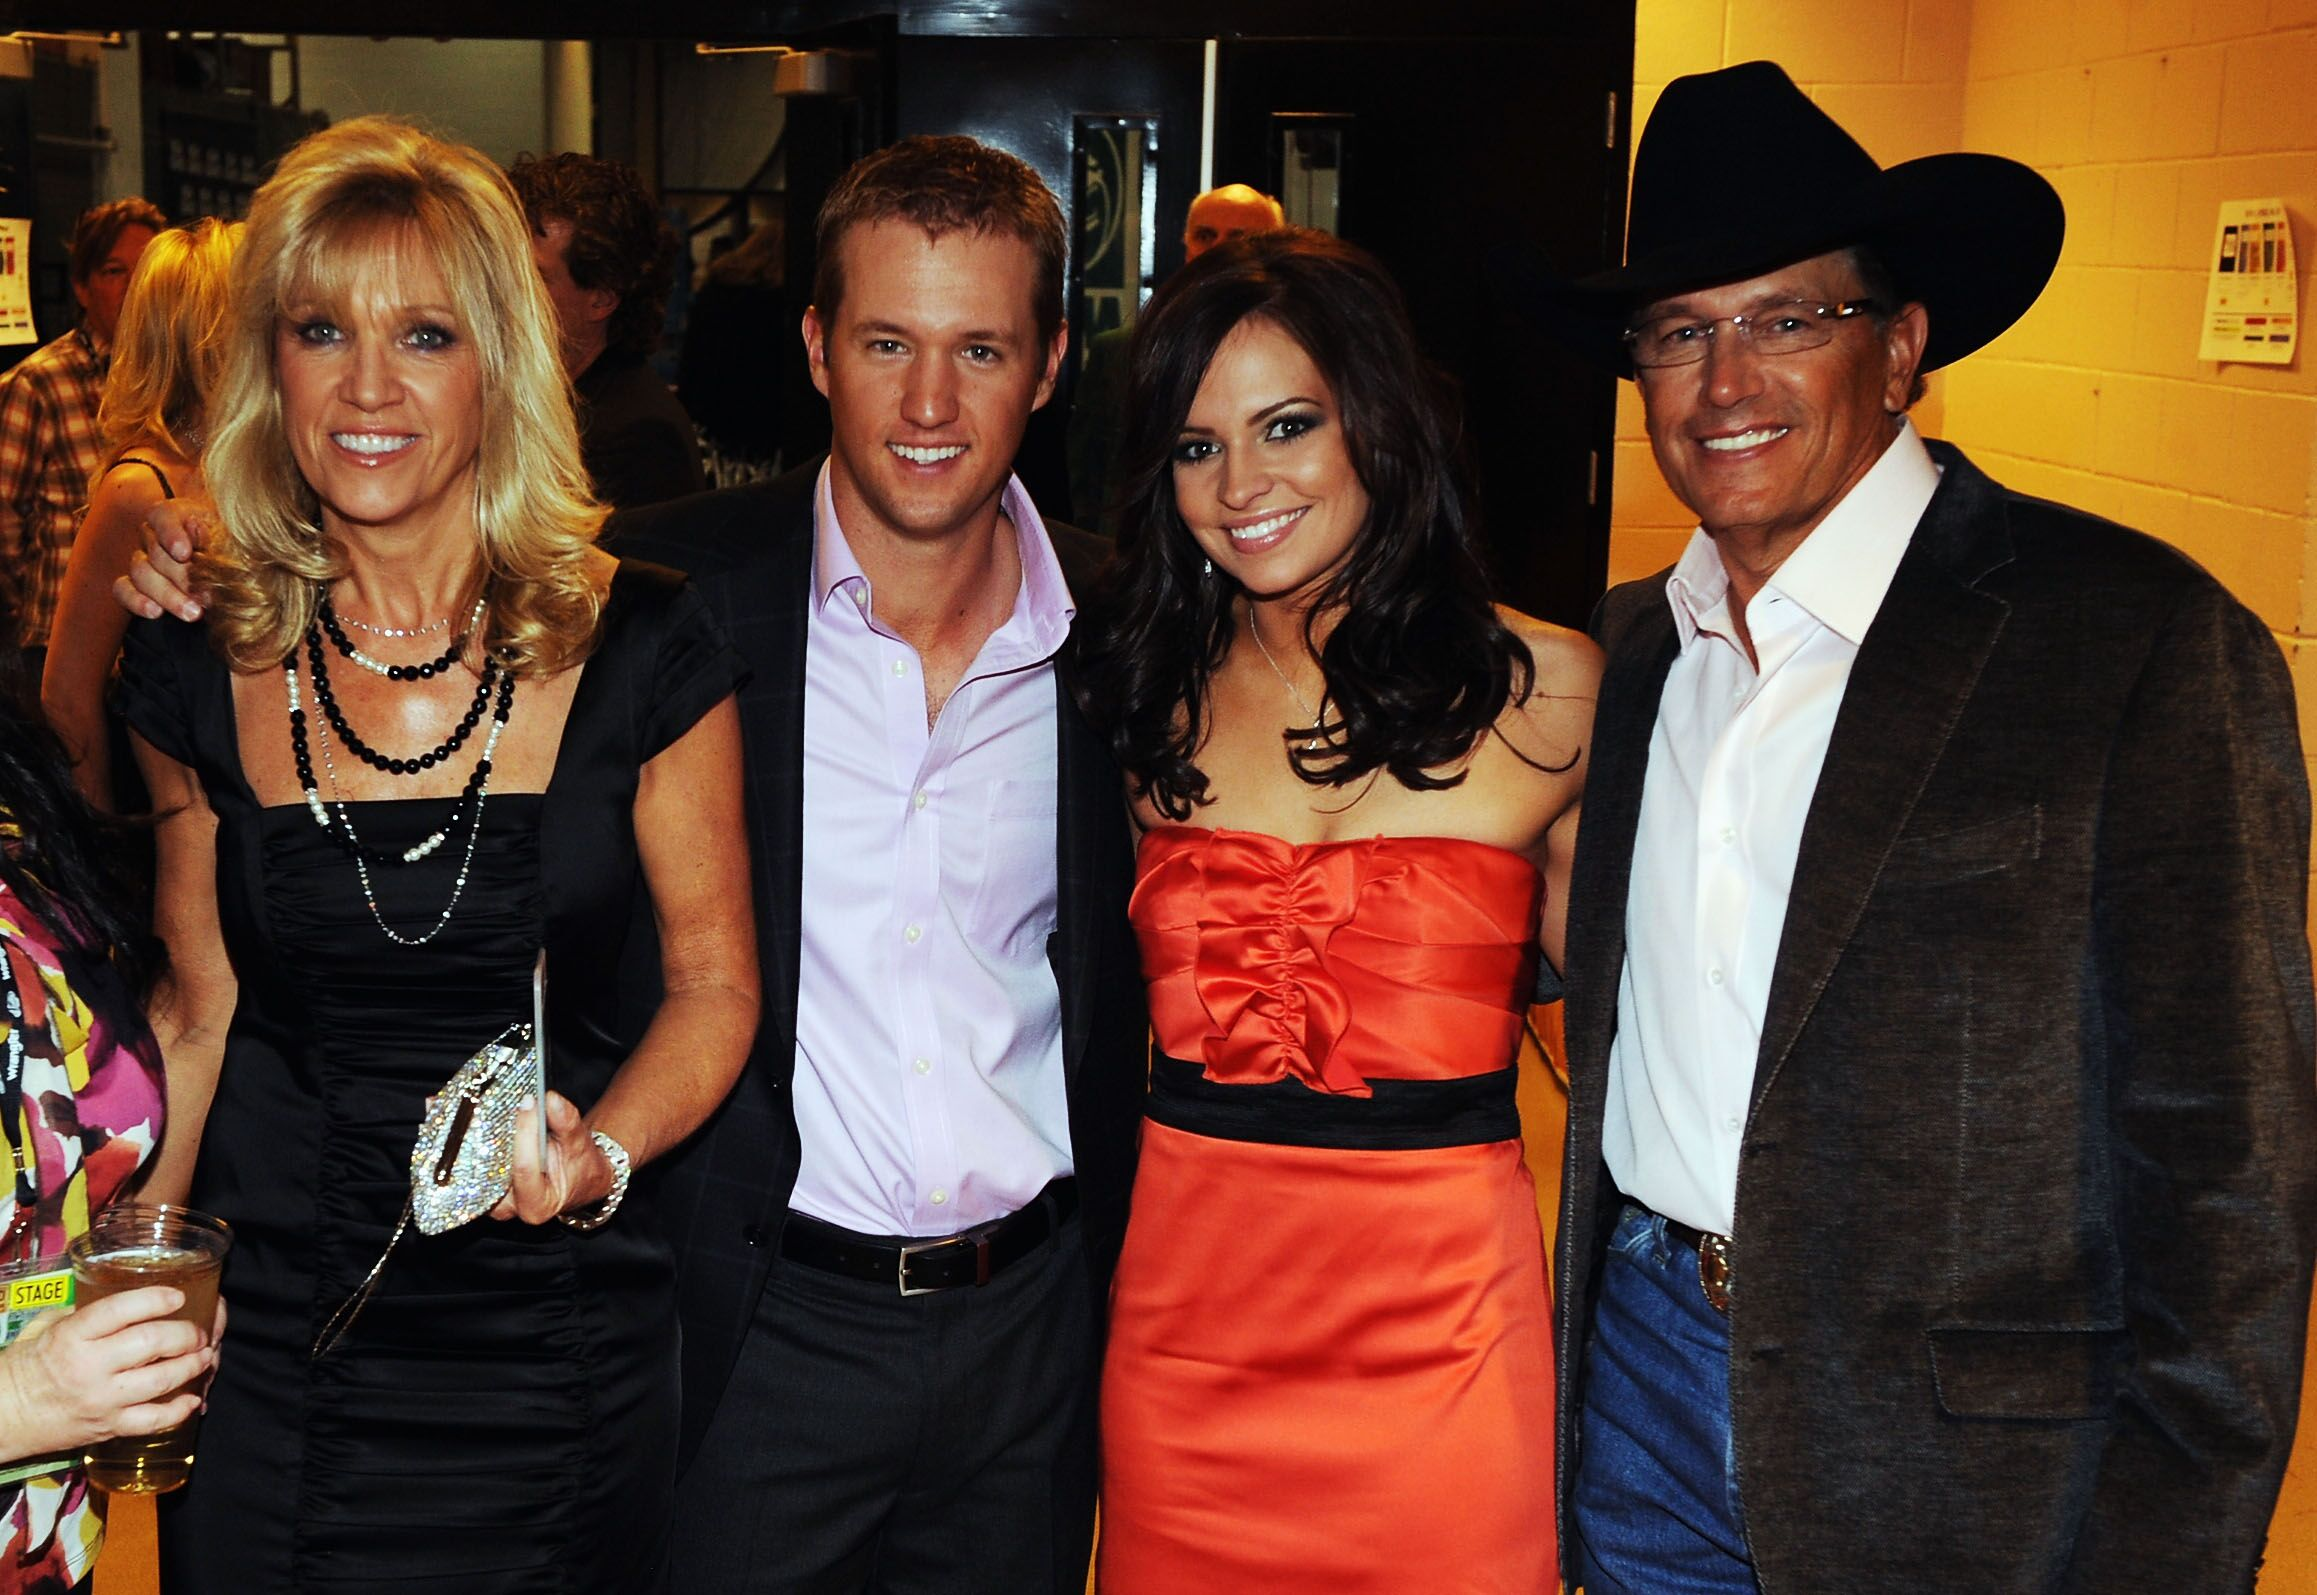 Norma Strait, Bubba Strait, Tamara Shipman, and George Strait pose backstage. | Source: Getty Images